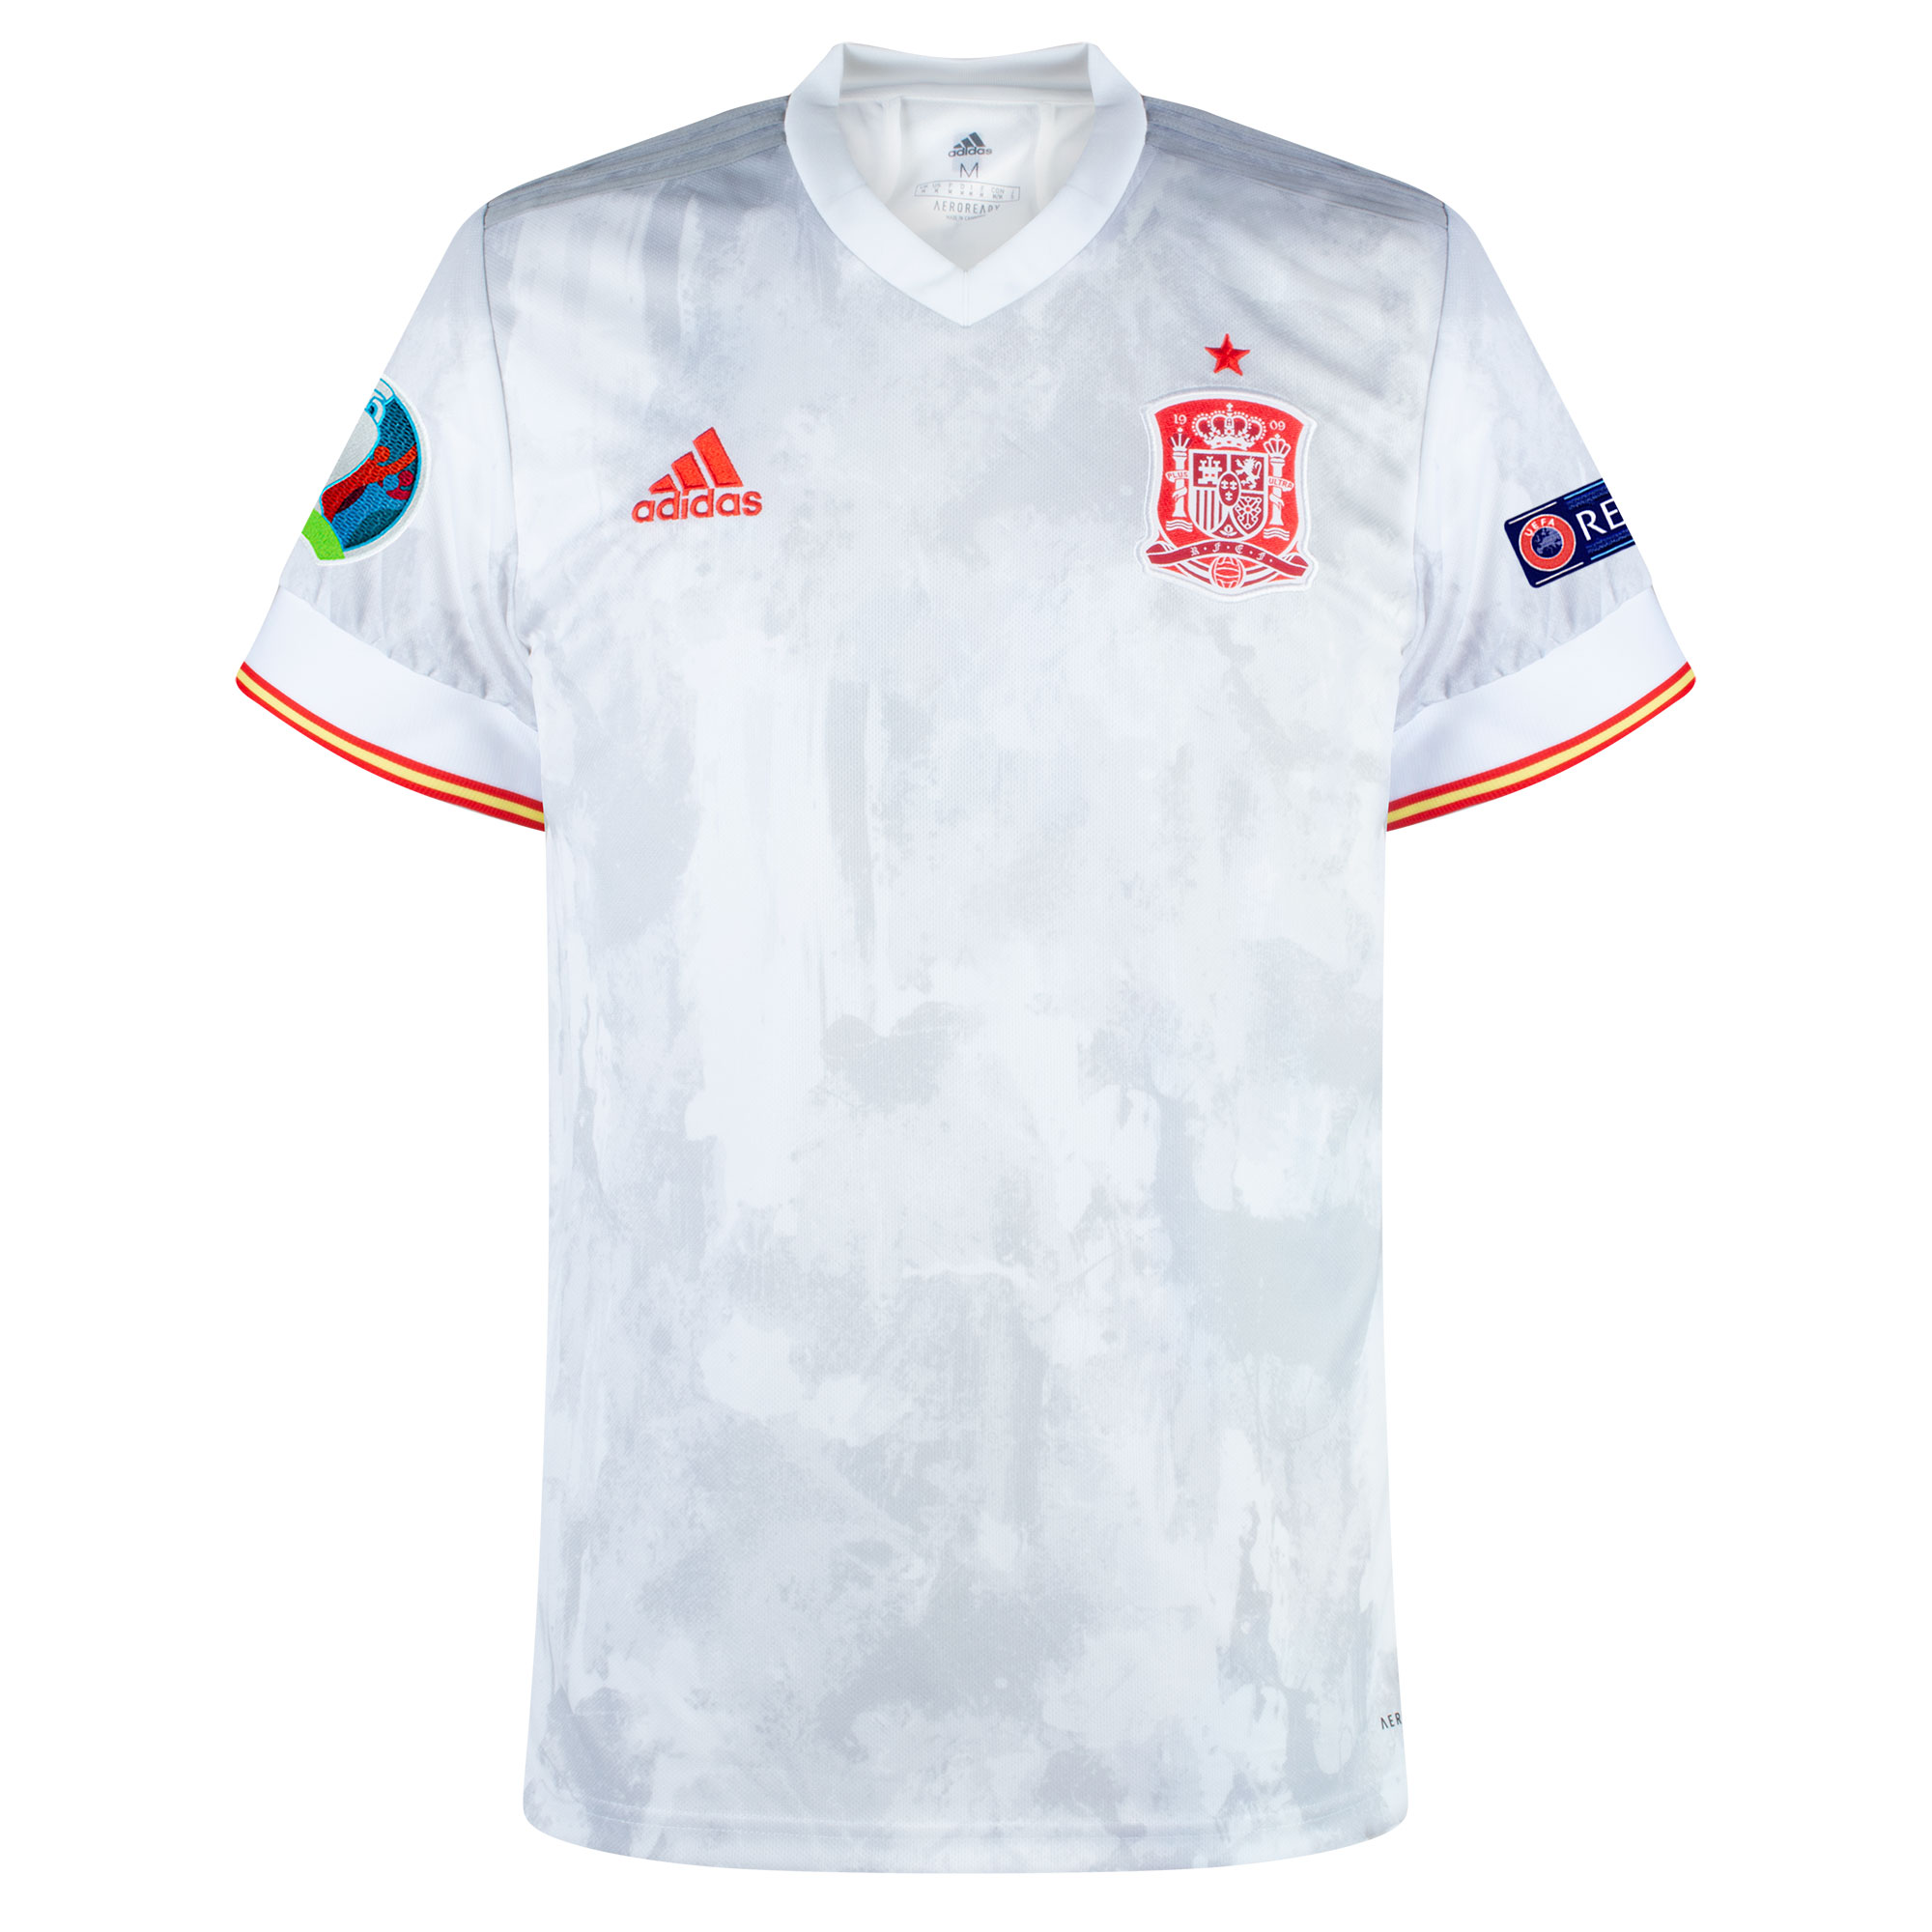 adidas Spain Away Shirt inc. Official Euro 2020 & Respect Patches